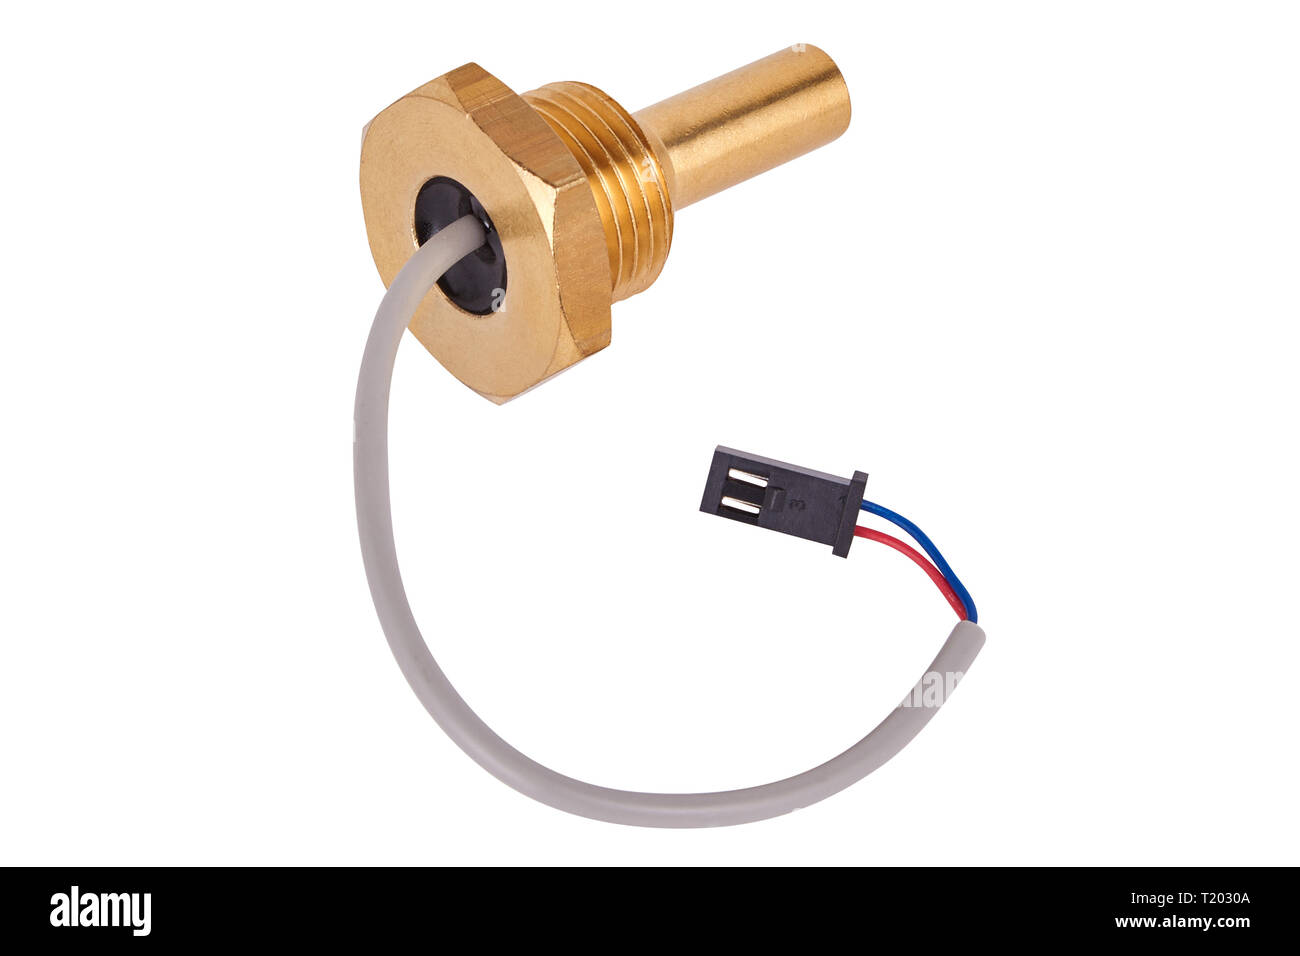 boiler temperature sensor. Spare parts for coffee machines. Isolated - Stock Image